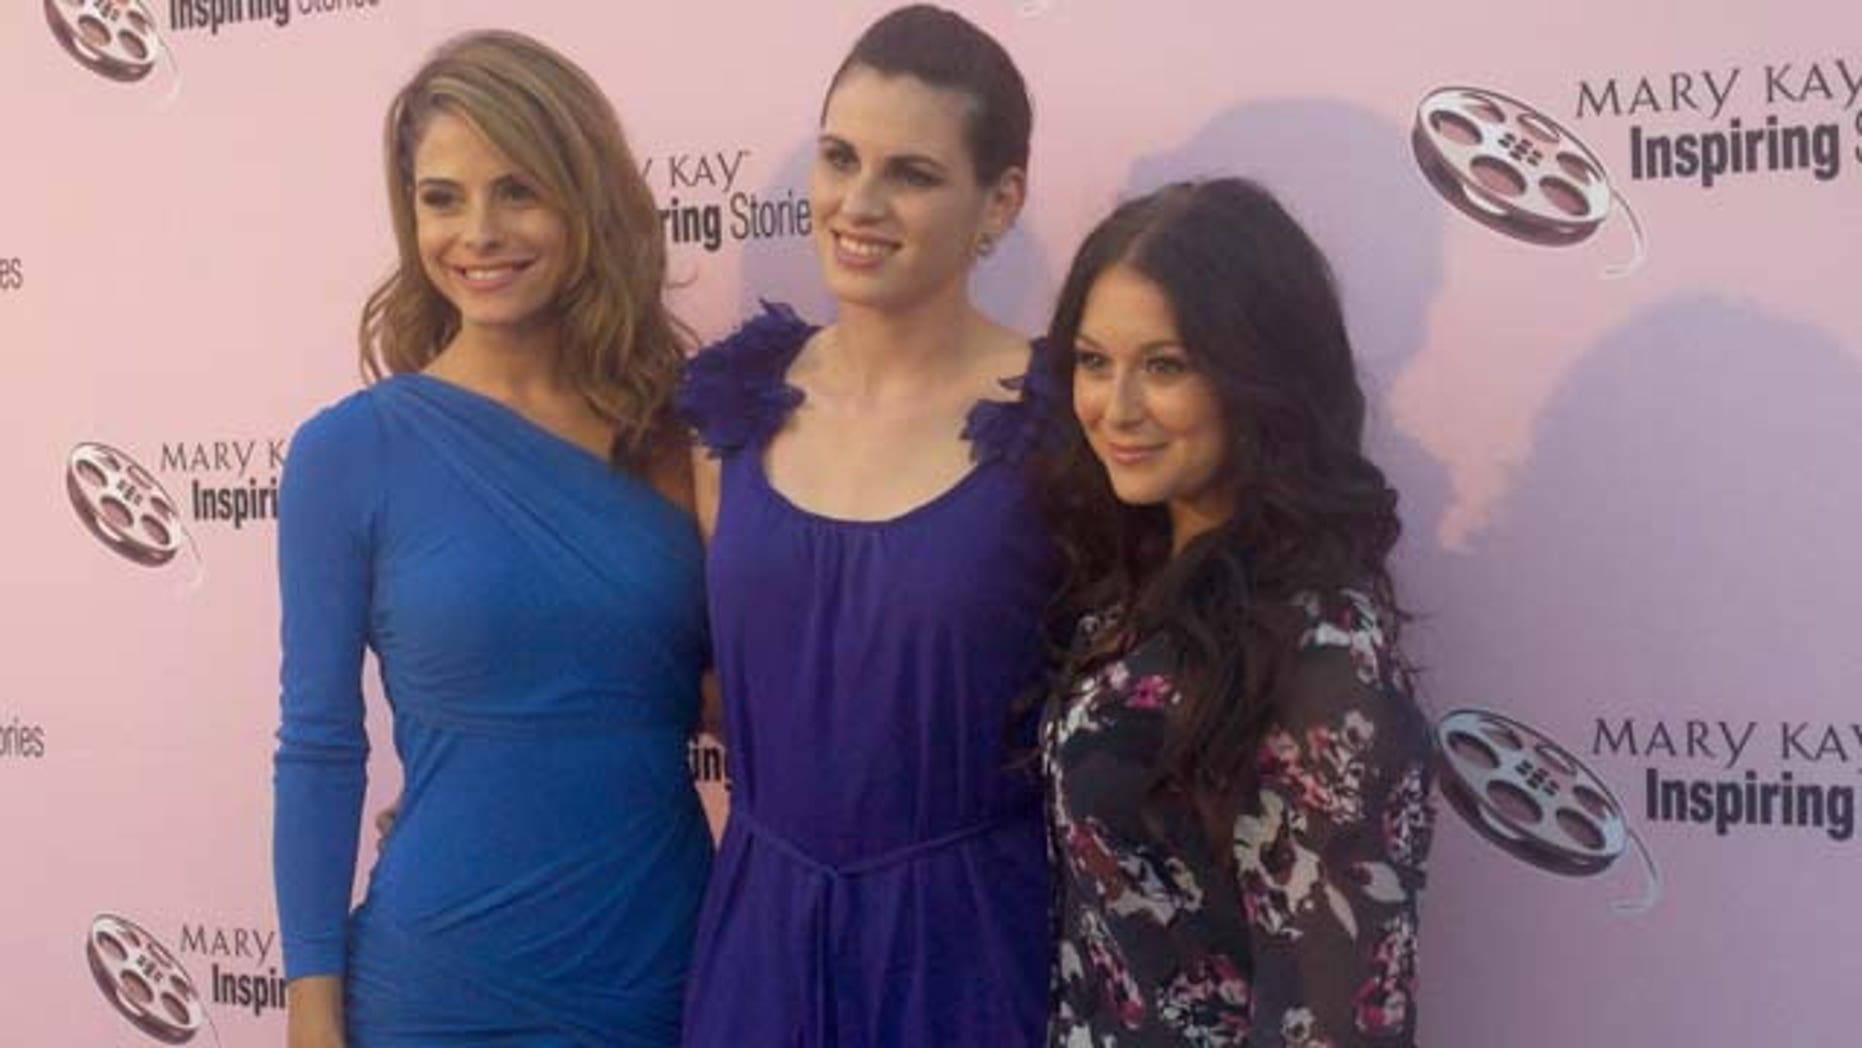 Sept. 29, 2011: Actresses Maria Menounos, Ada Alvarez and Alexa Vega attend Mary Kay's Inspiring Stories event on Thursday to fight domestic violence.